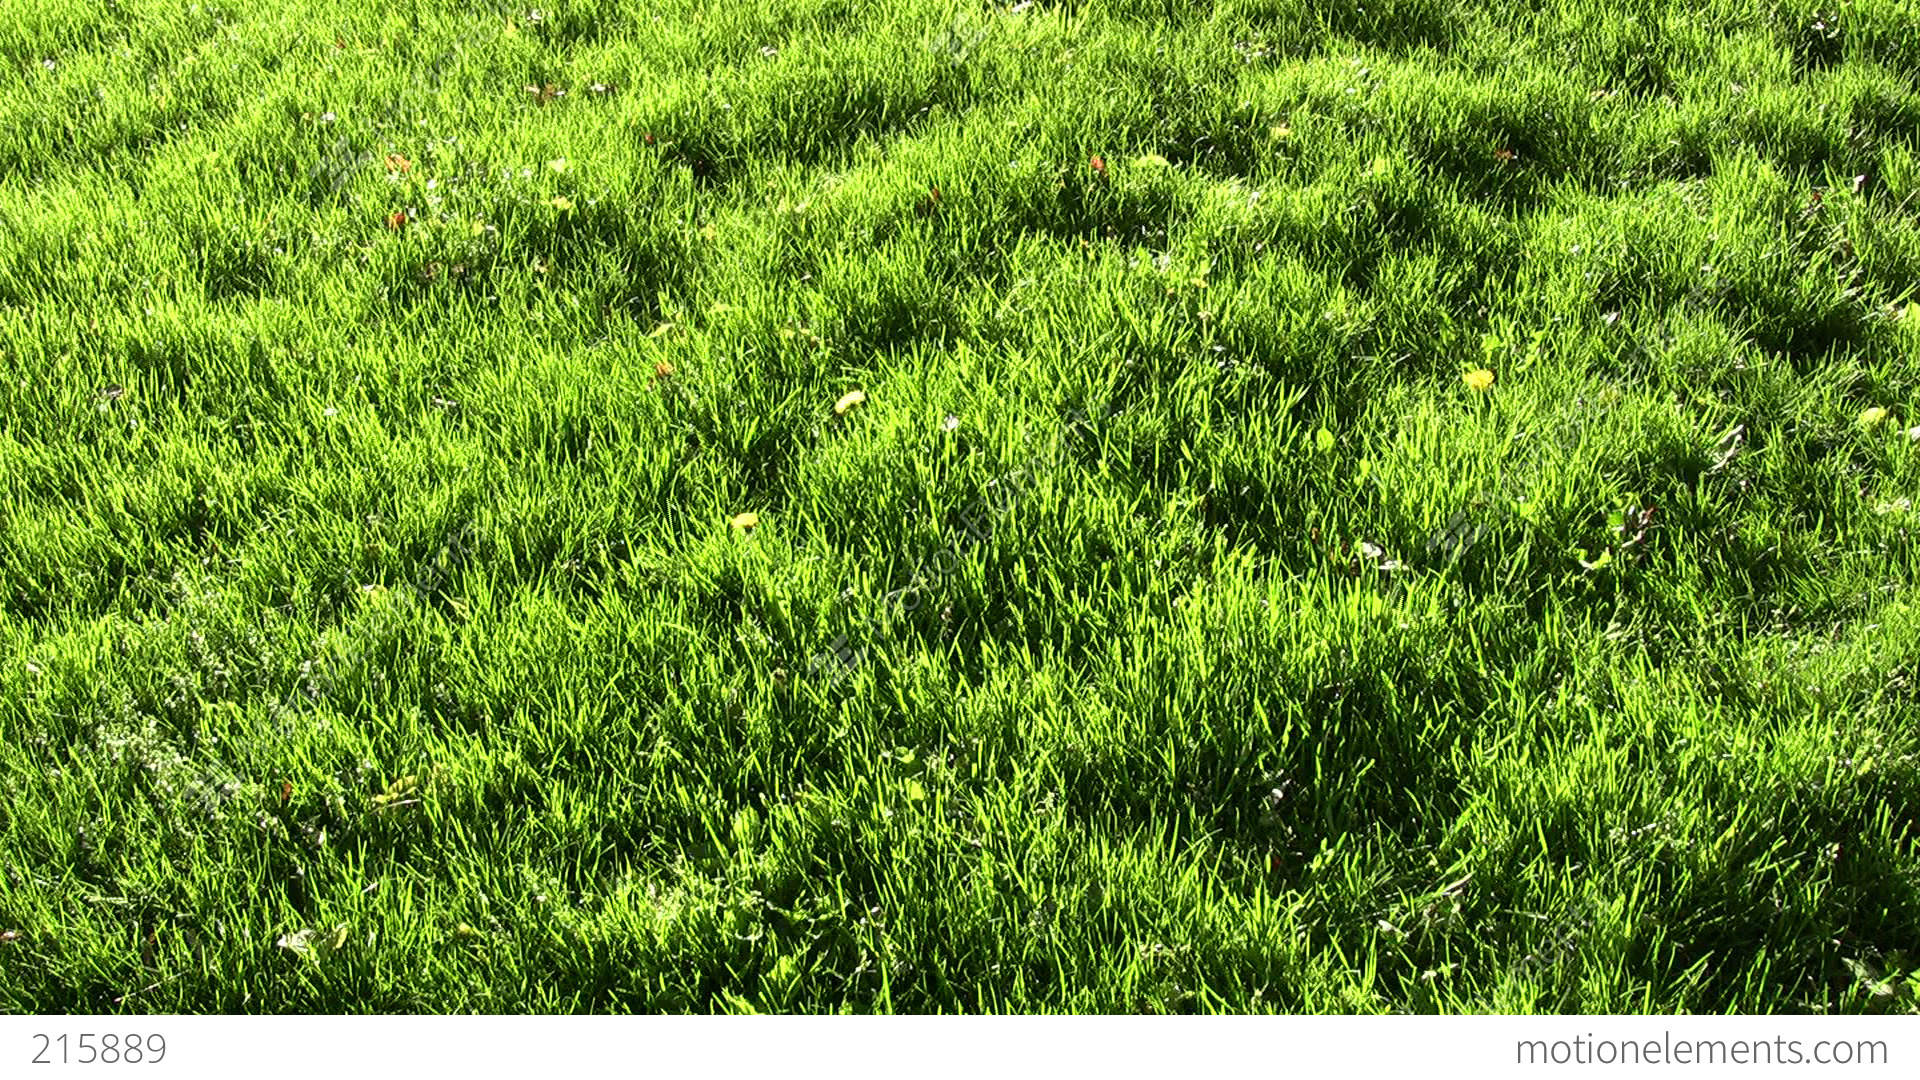 sunlight on the grass Grass in shady areas needs less fertilizer than grass growing in full sun spreading a thin layer of compost is a great way to give shady lawns a boost in early spring if you plan to aerate, spread compost after aerating.